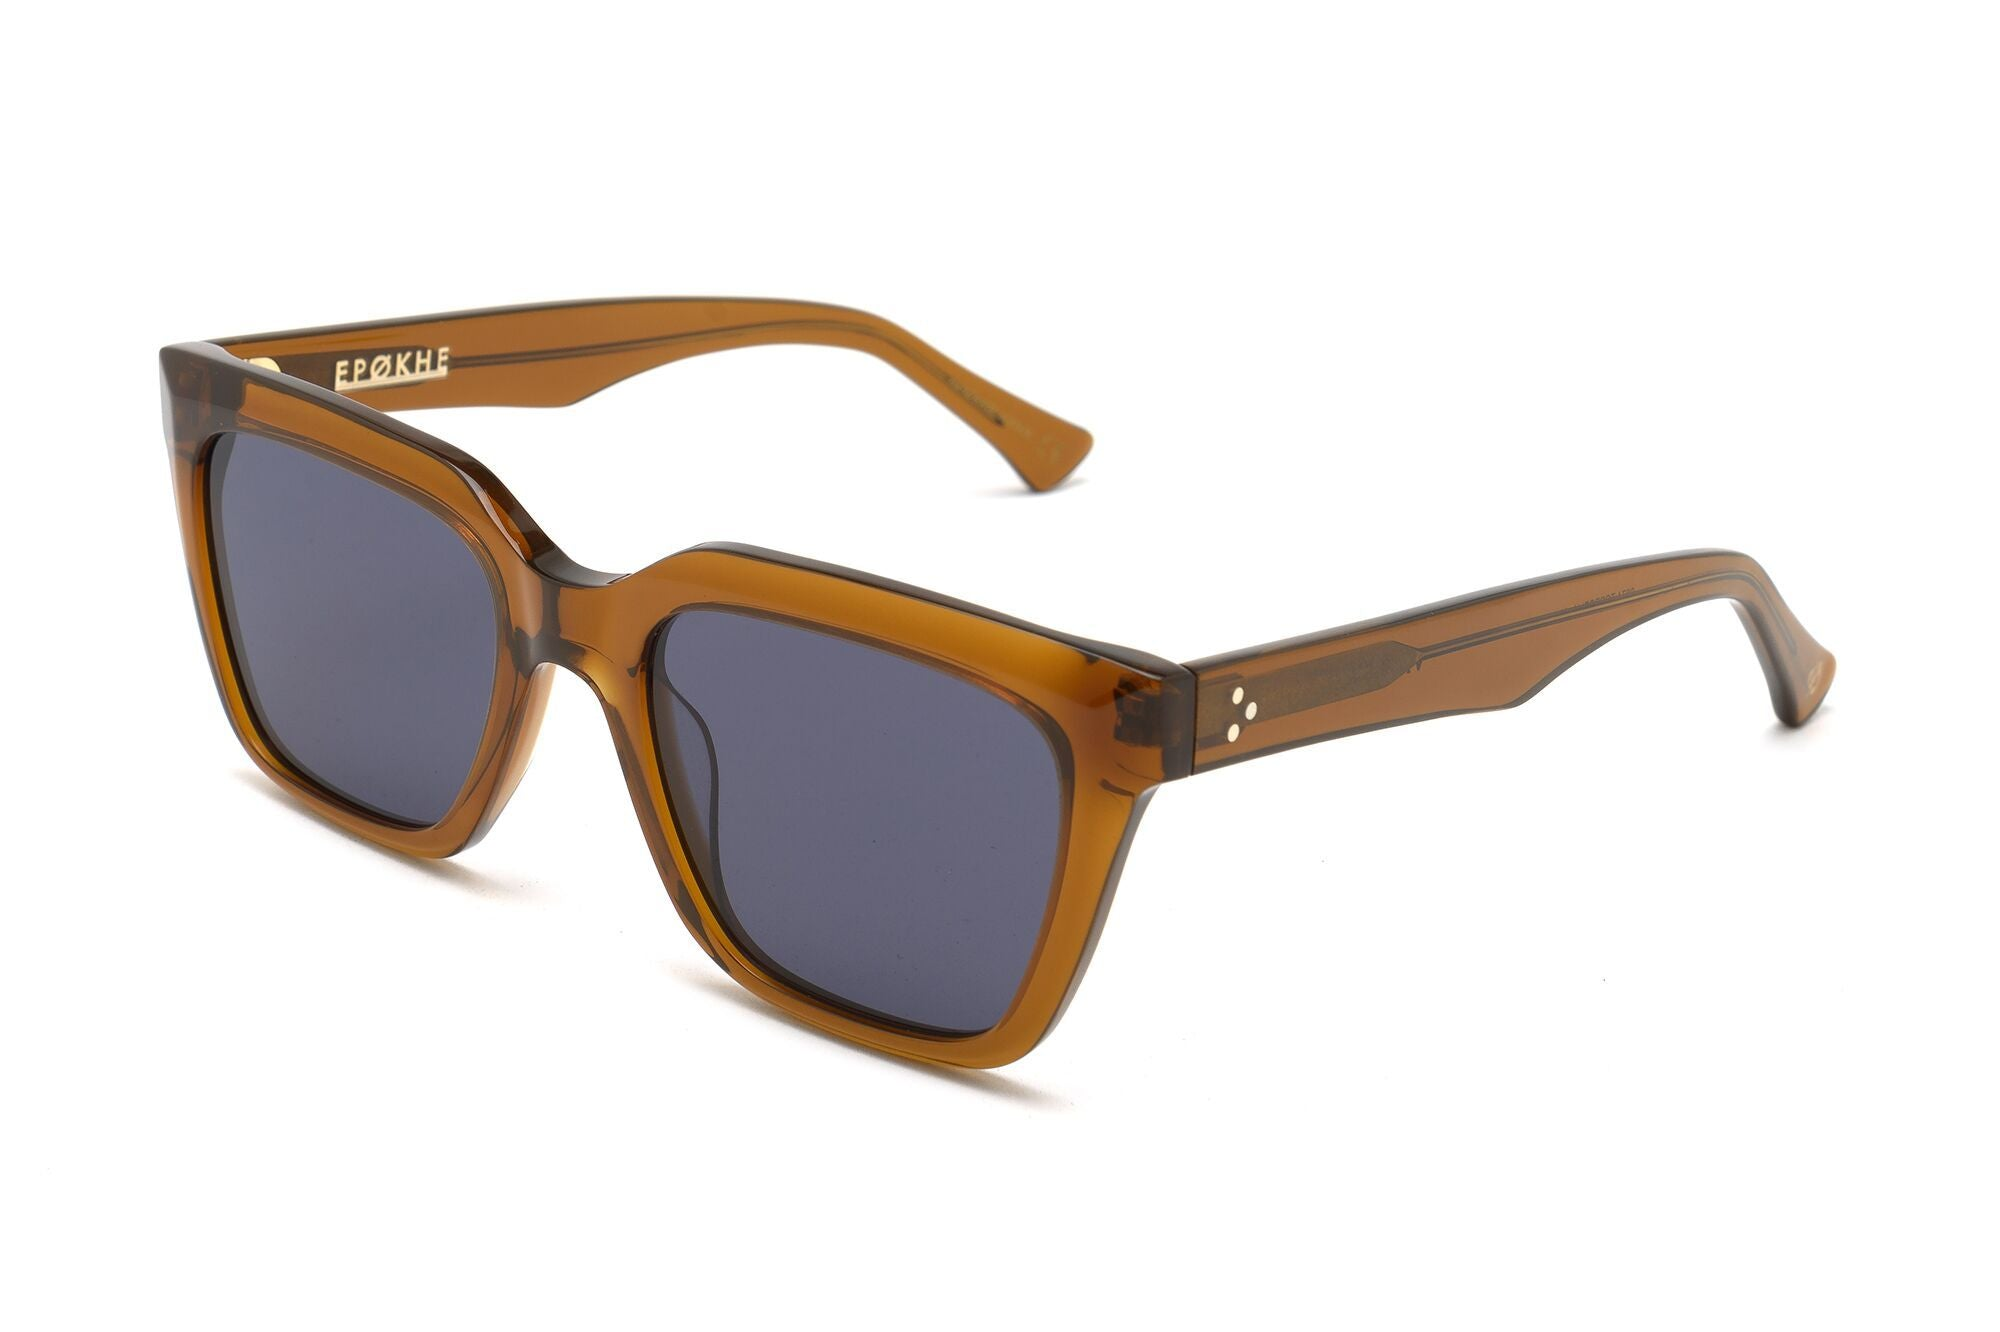 Epokhe VALENTINE - TOBACCO POLISHED/BLACK - Board Store EpokheSunglasses